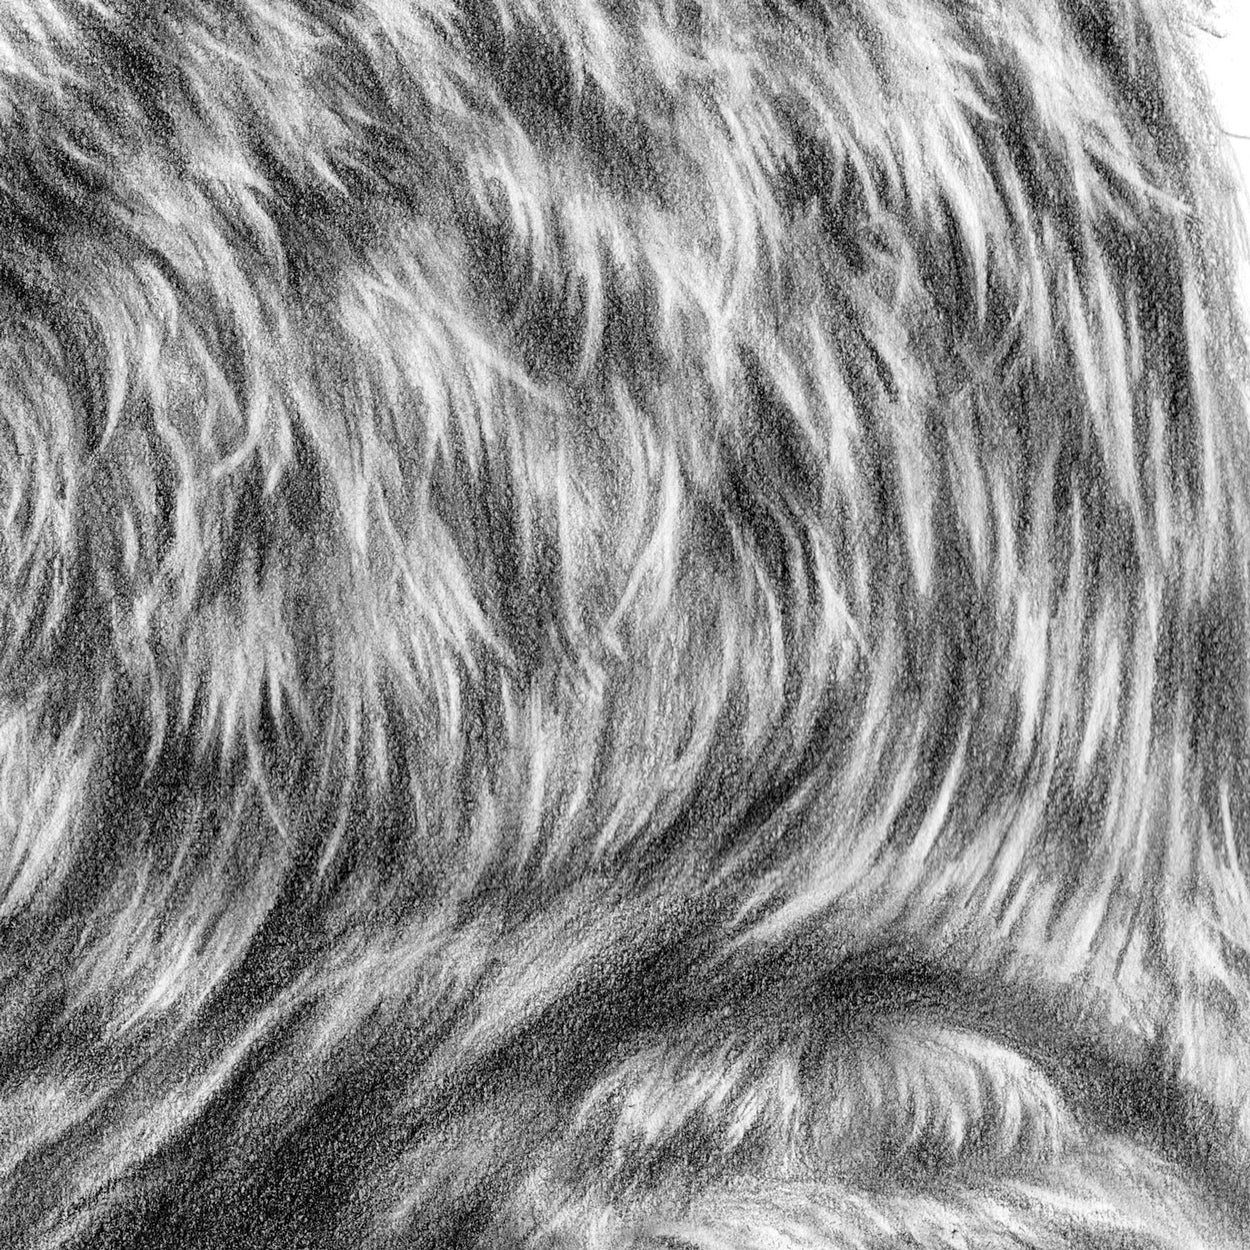 Kestrel Drawing Close-up 3 - The Thriving Wild - Jill Dimond